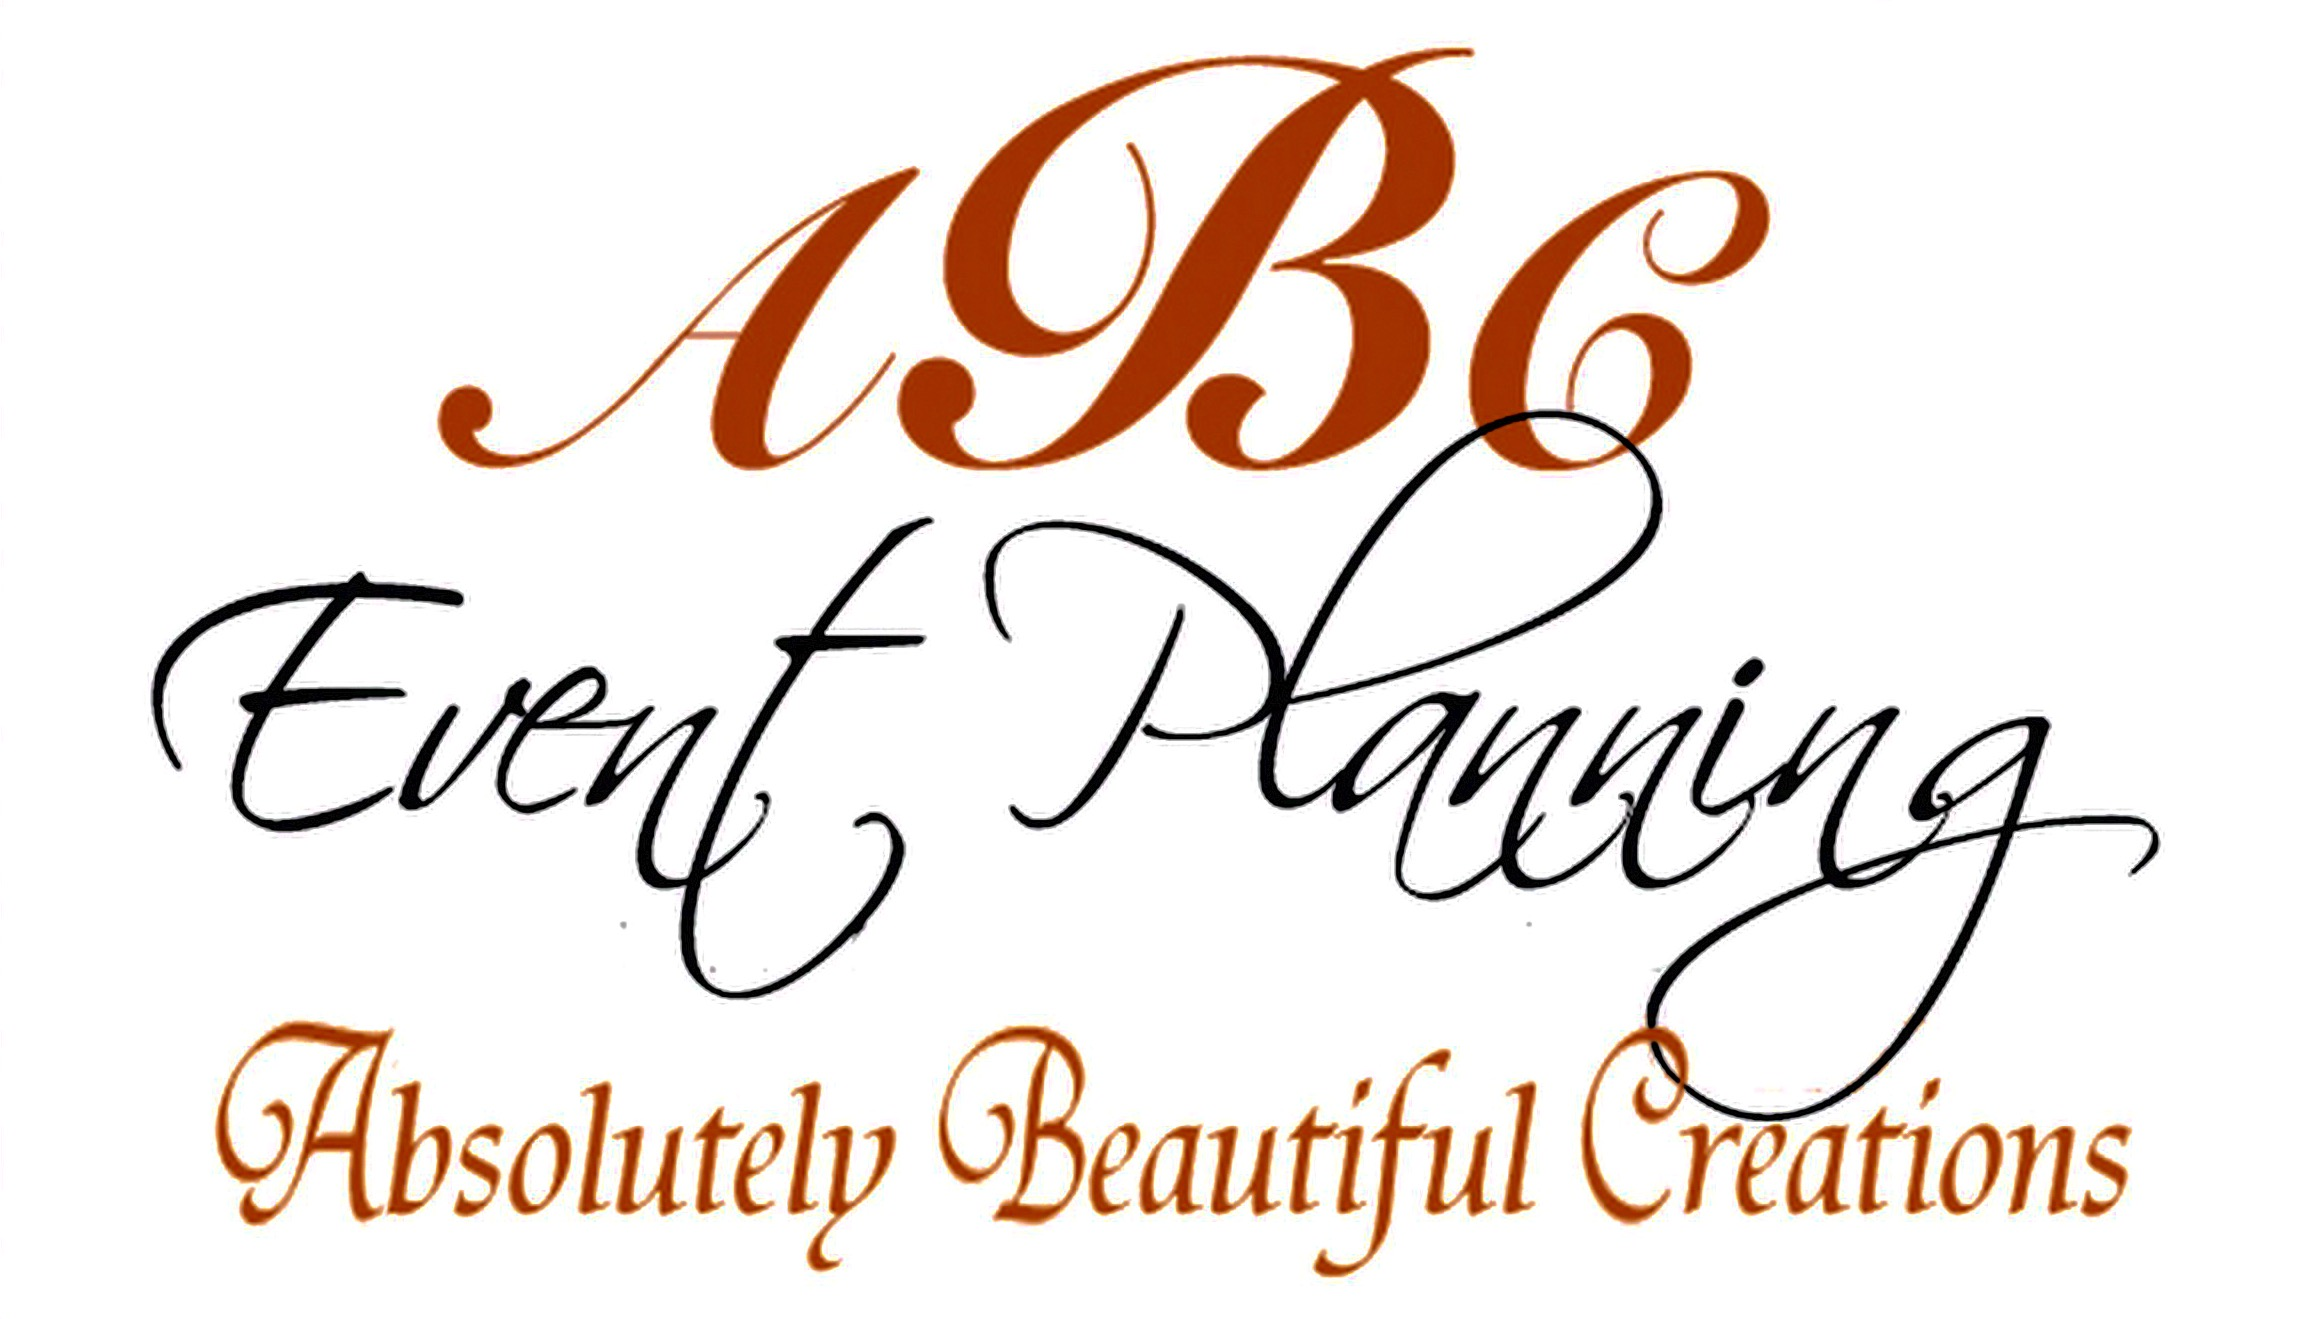 Event planning abc event planning of riverview florida beautifully planned events for any occasion 1betcityfo Choice Image